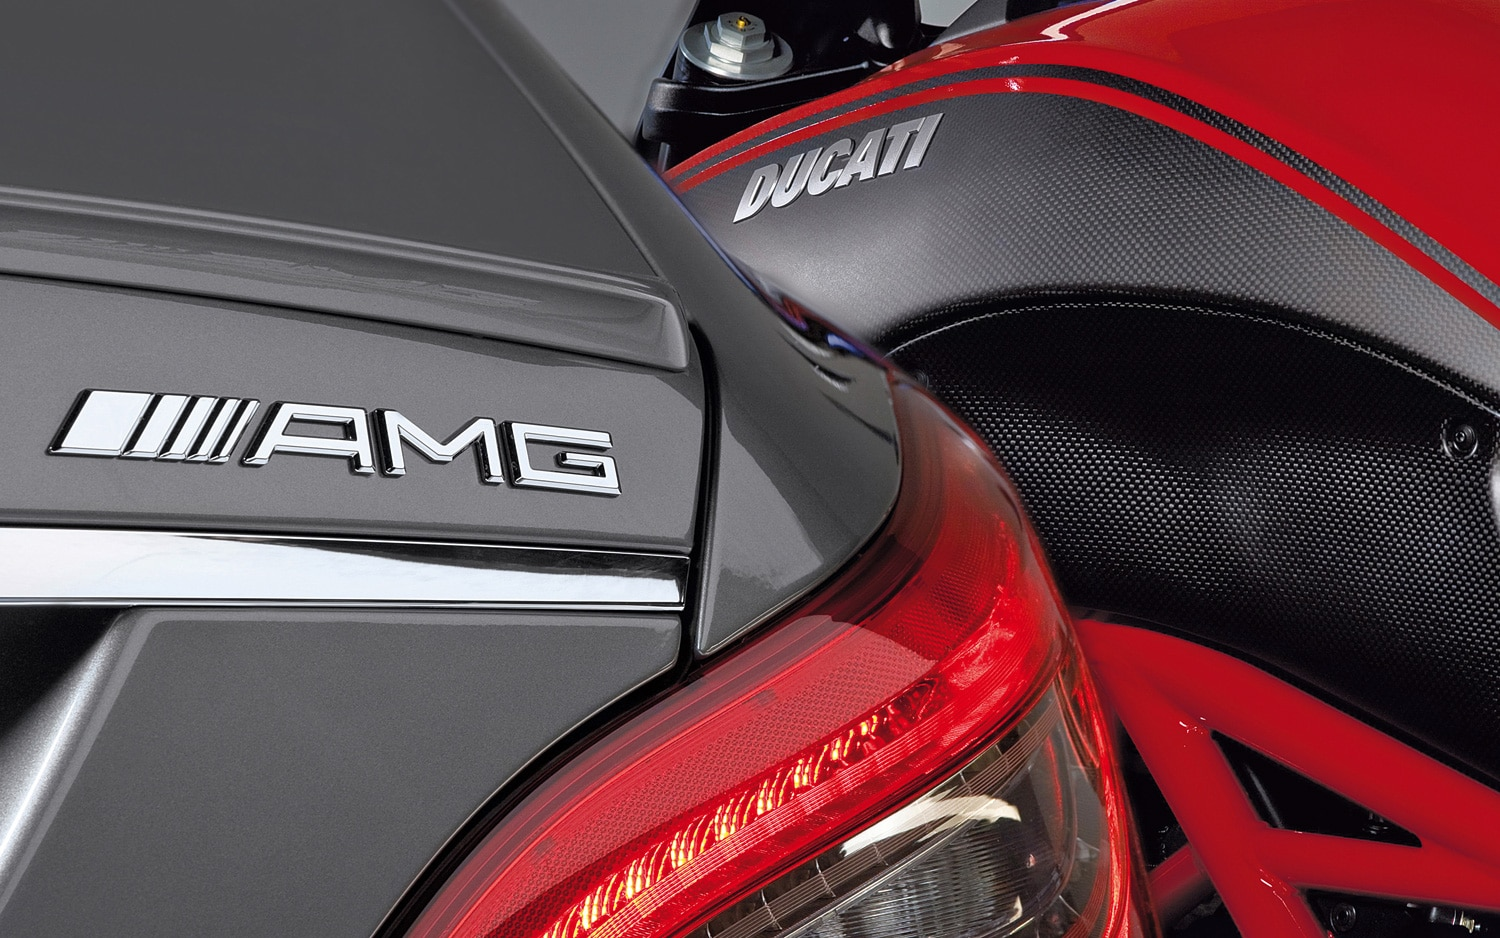 2012 Mercedes Benz CLS63 AMG And Ducati Diavel 41